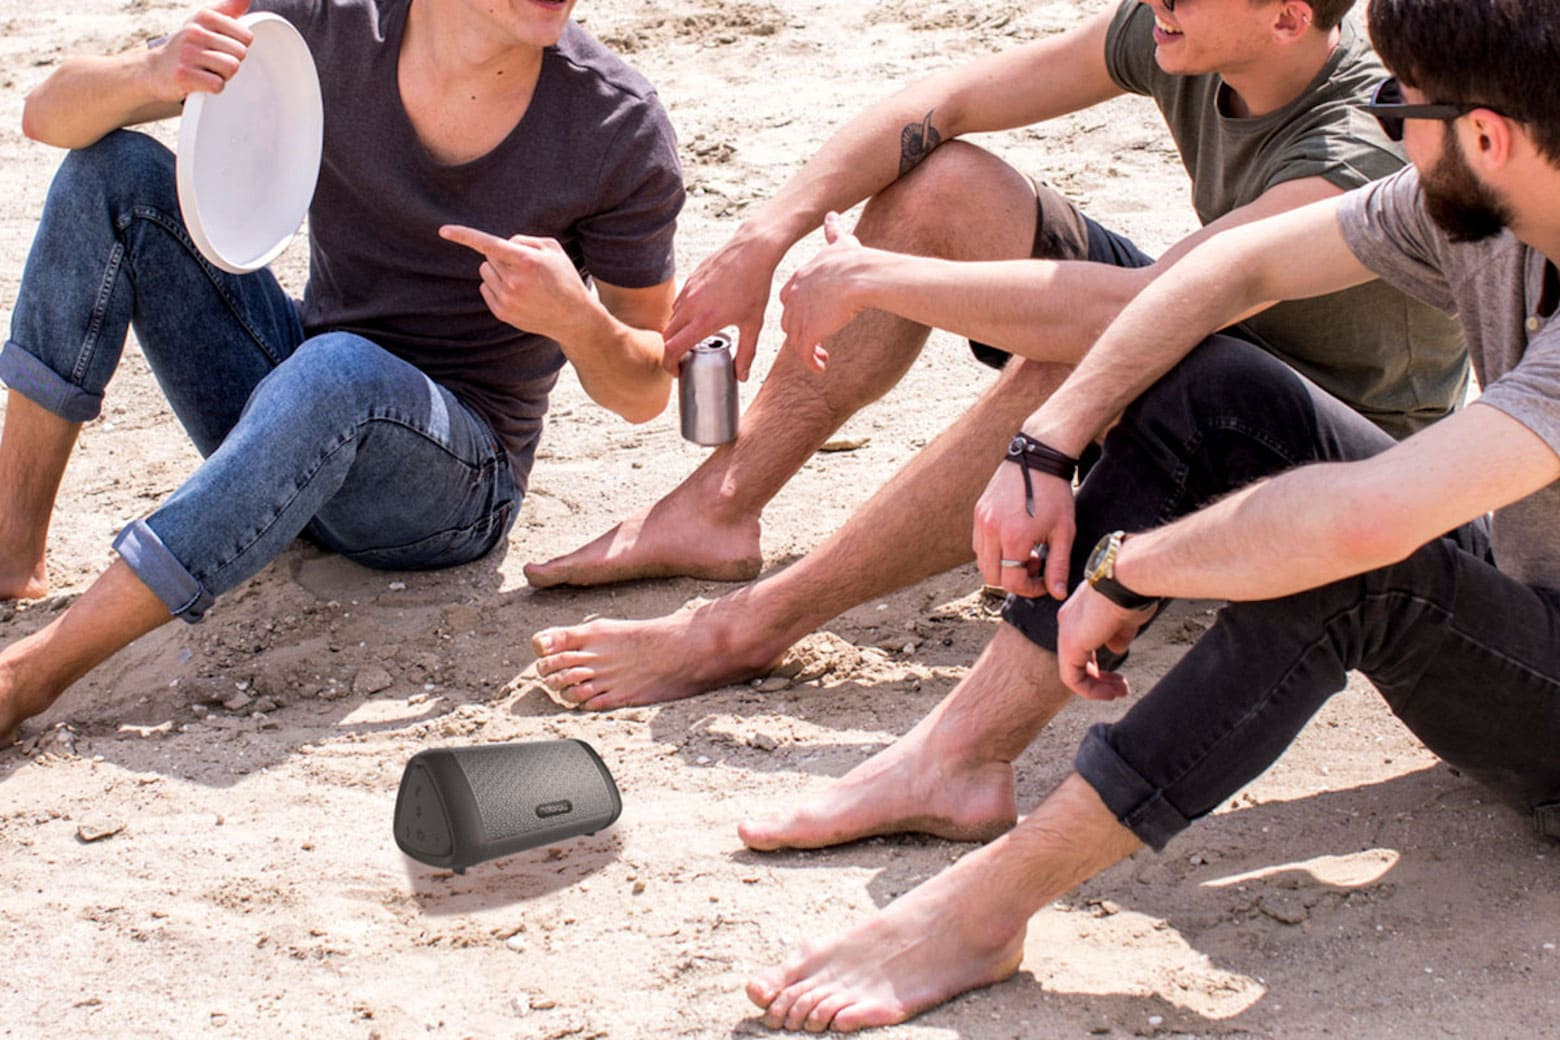 This Motorola Bluetooth speaker delivers 9 hours of sound